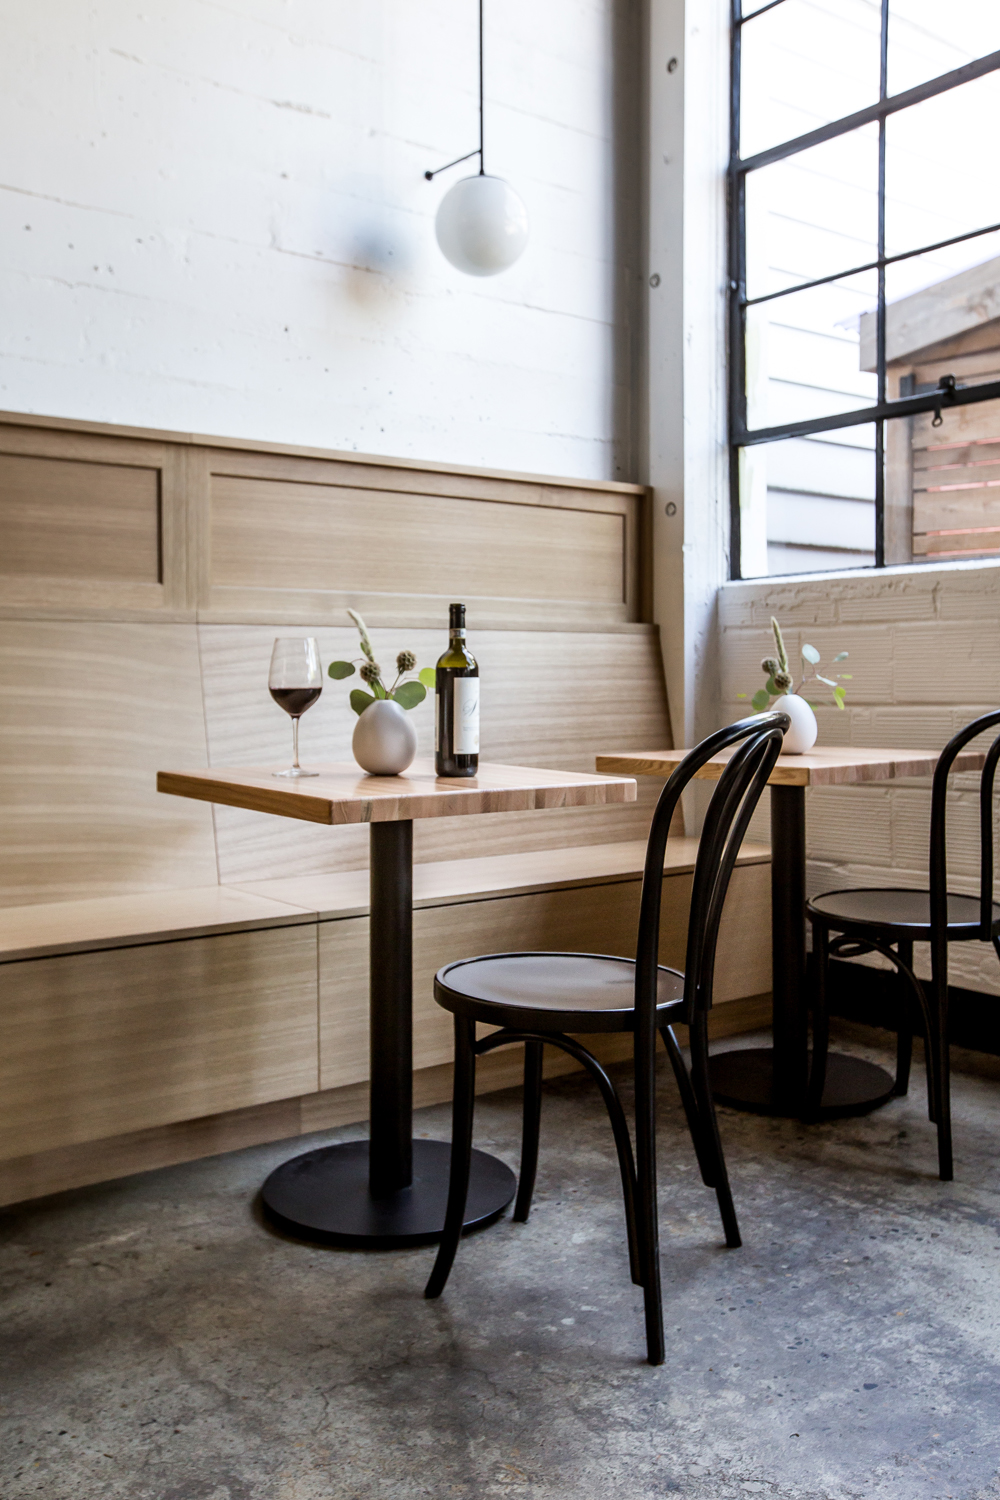 Oak banquettes are on each side of the restaurant.